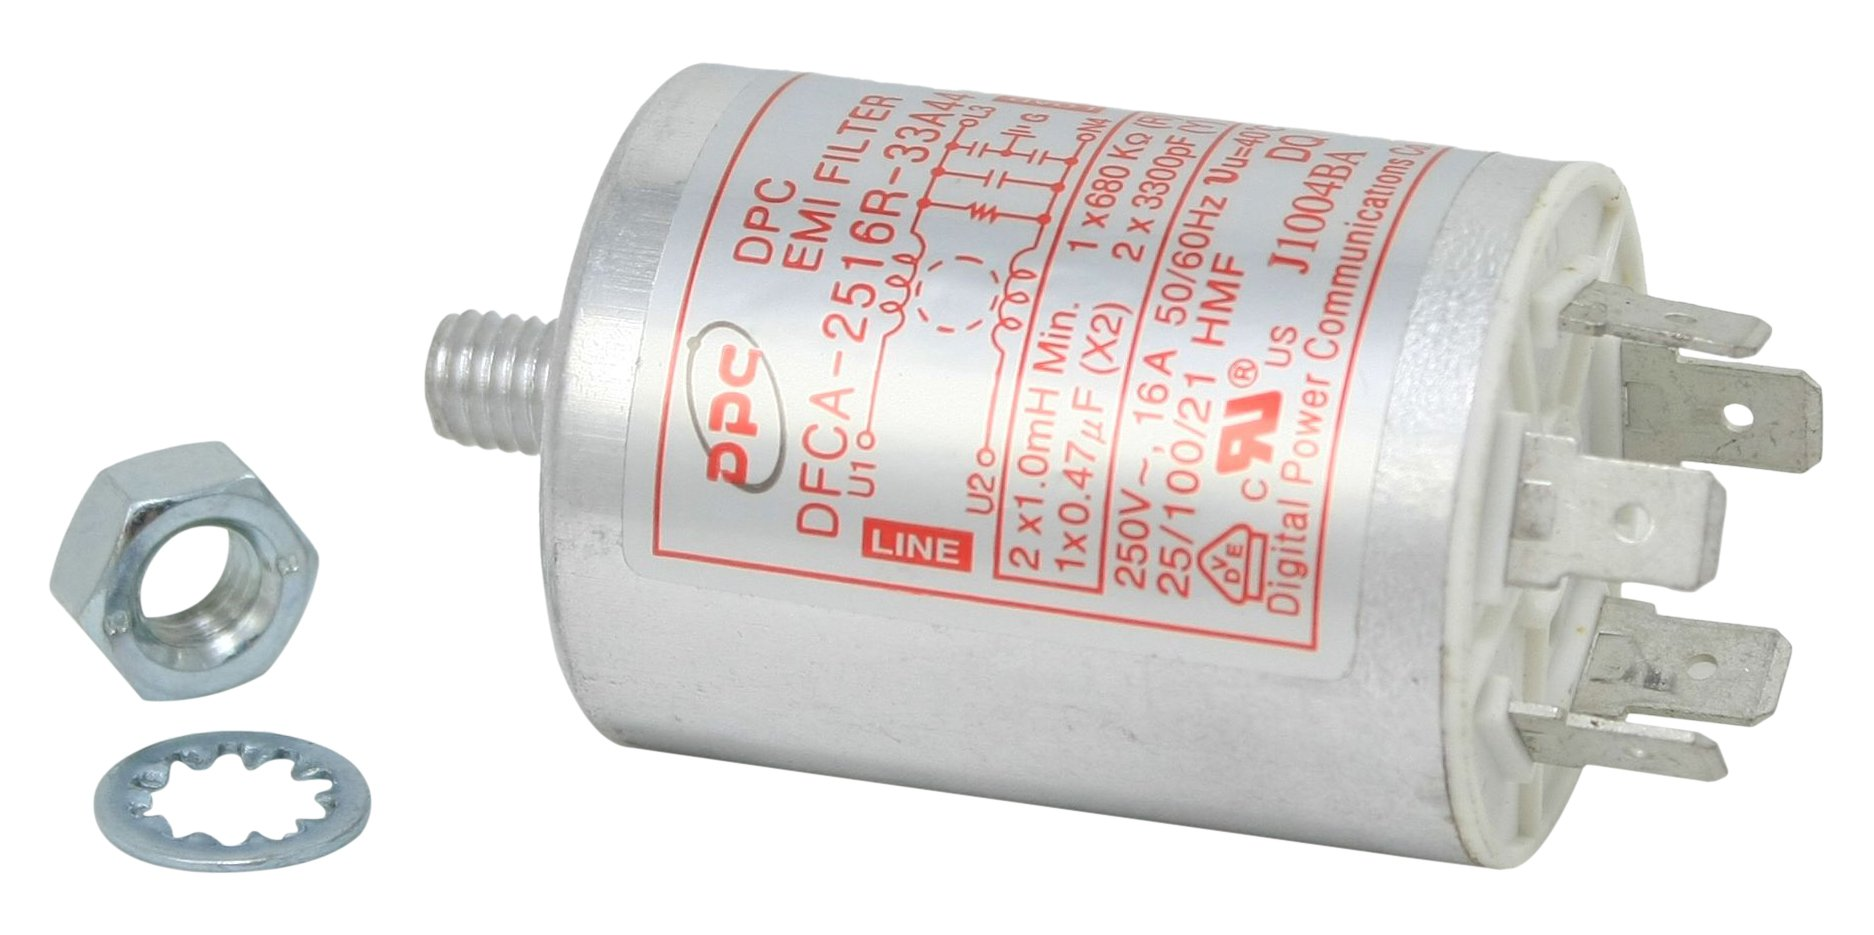 Whirlpool 8206624O Microwave Parts Filter